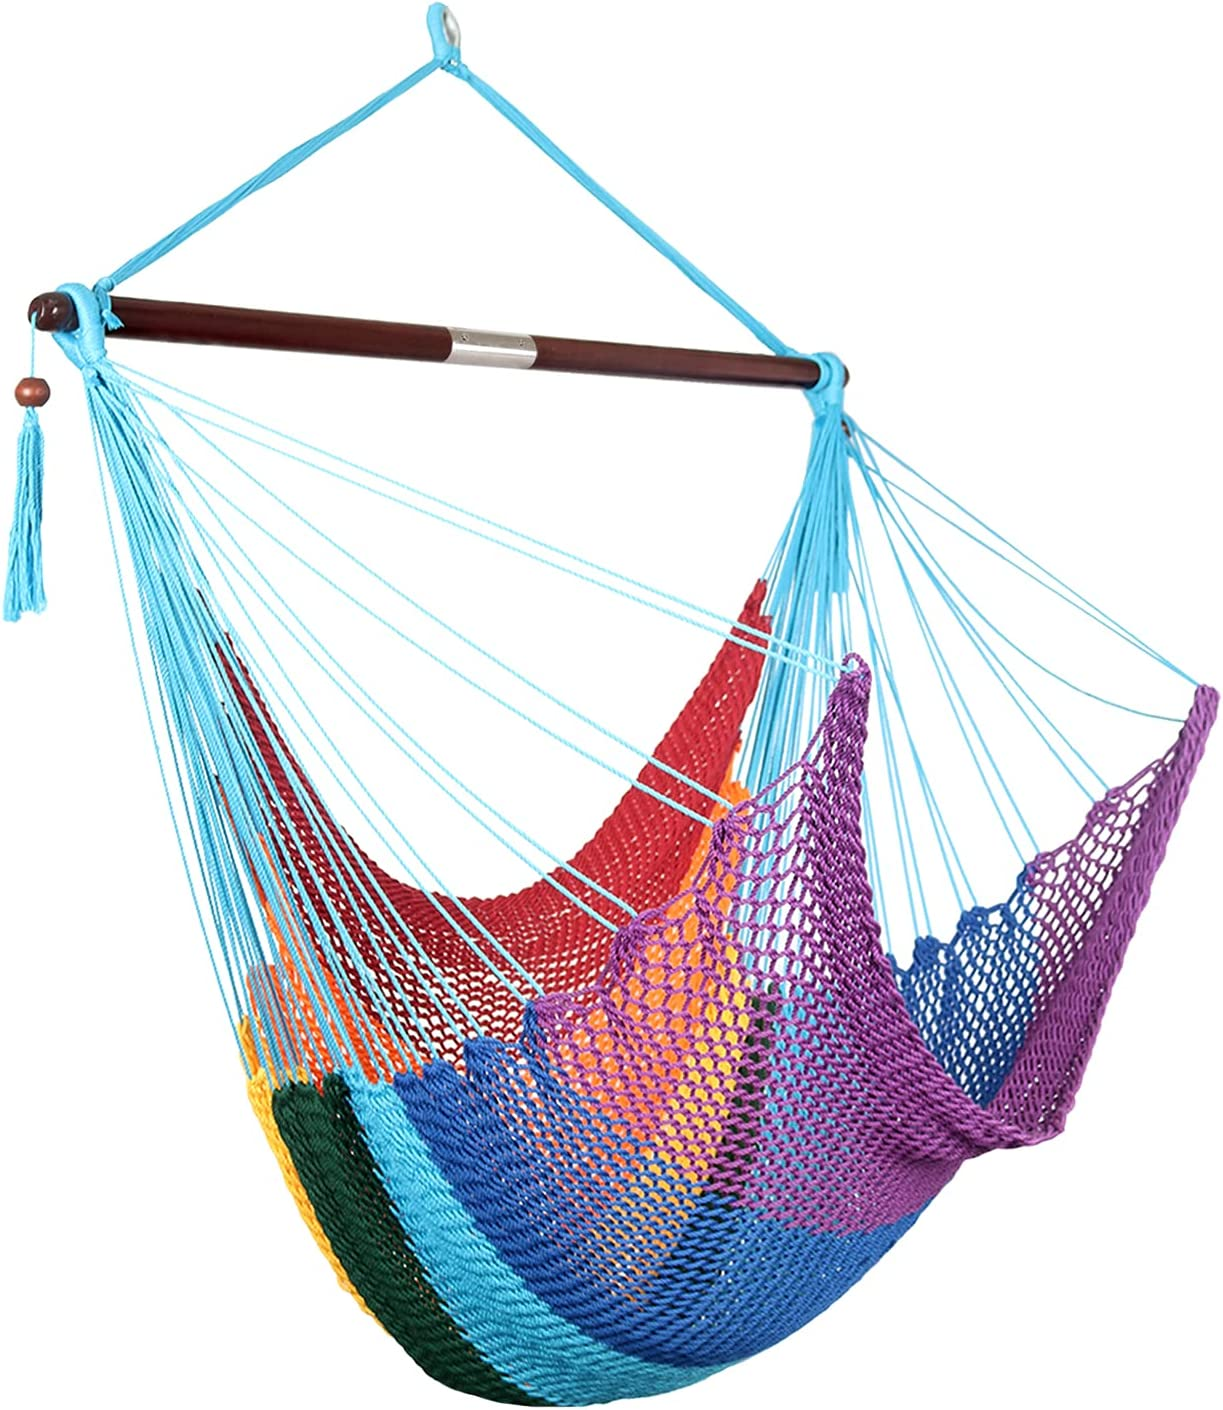 Moonlight Caribbean Direct sale of manufacturer Hammock Hanging Quantity limited Han Polyester Chair Durable